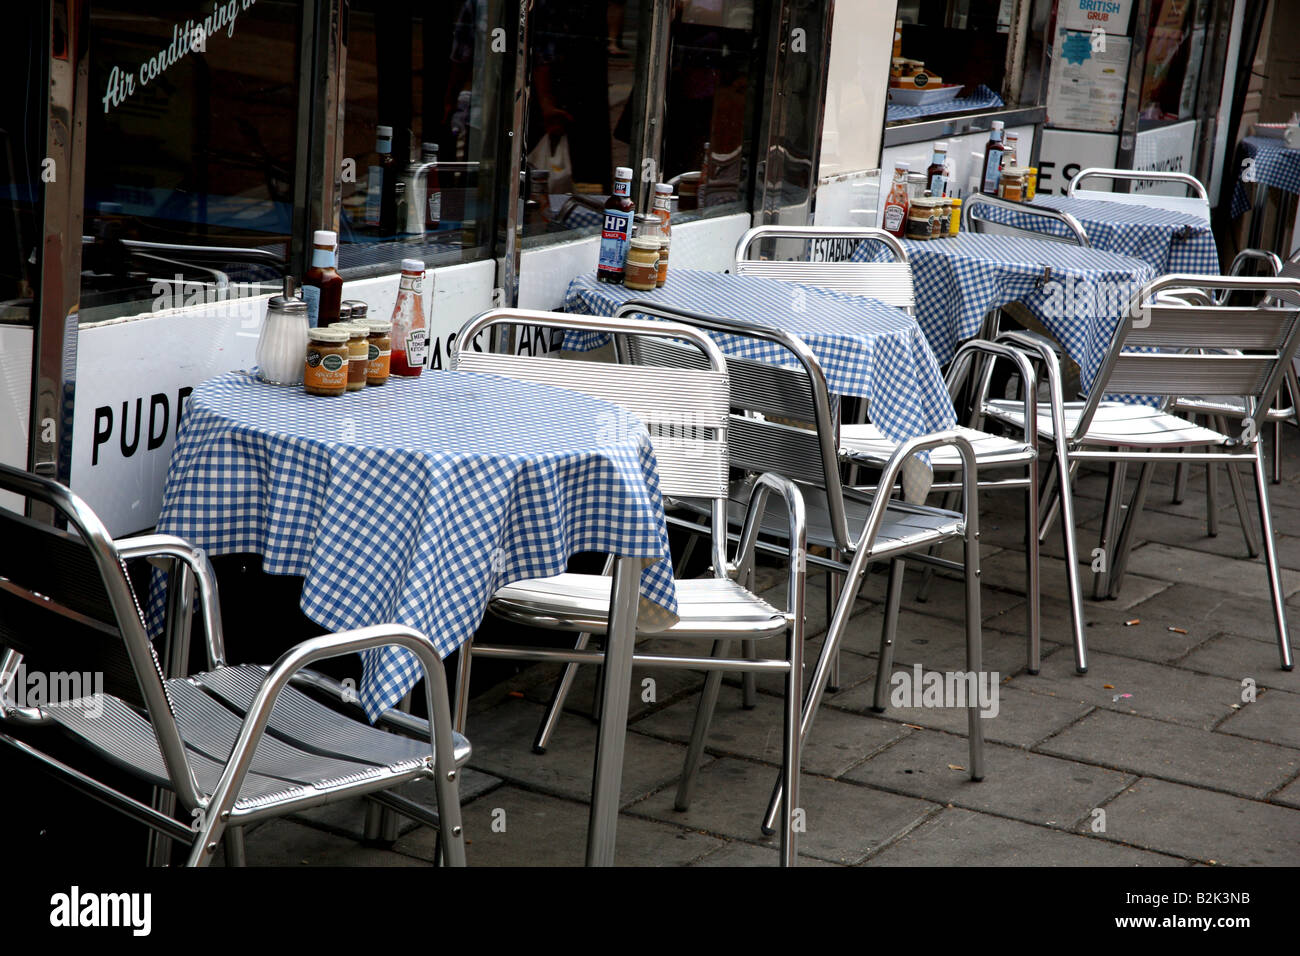 Empty restaurant tables in London during economic downturn - Stock Image